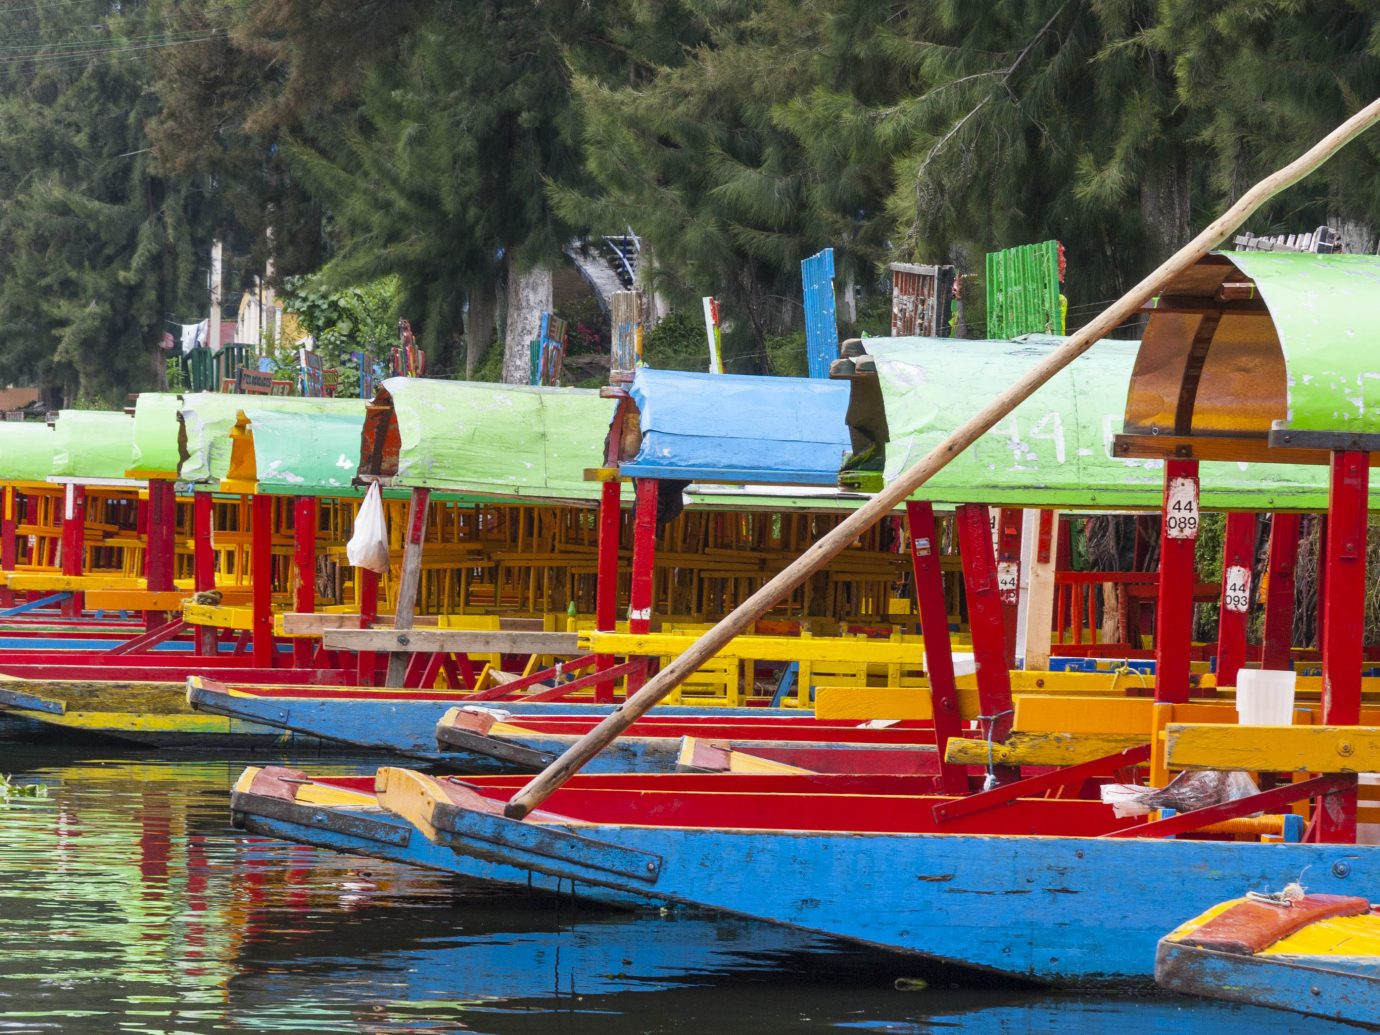 Arts + Culture Mexico City Travel Tips Trip Ideas waterway water water transportation leisure Boat boating Rowing watercraft rowing recreation amusement park plant tree tourism Canal fun